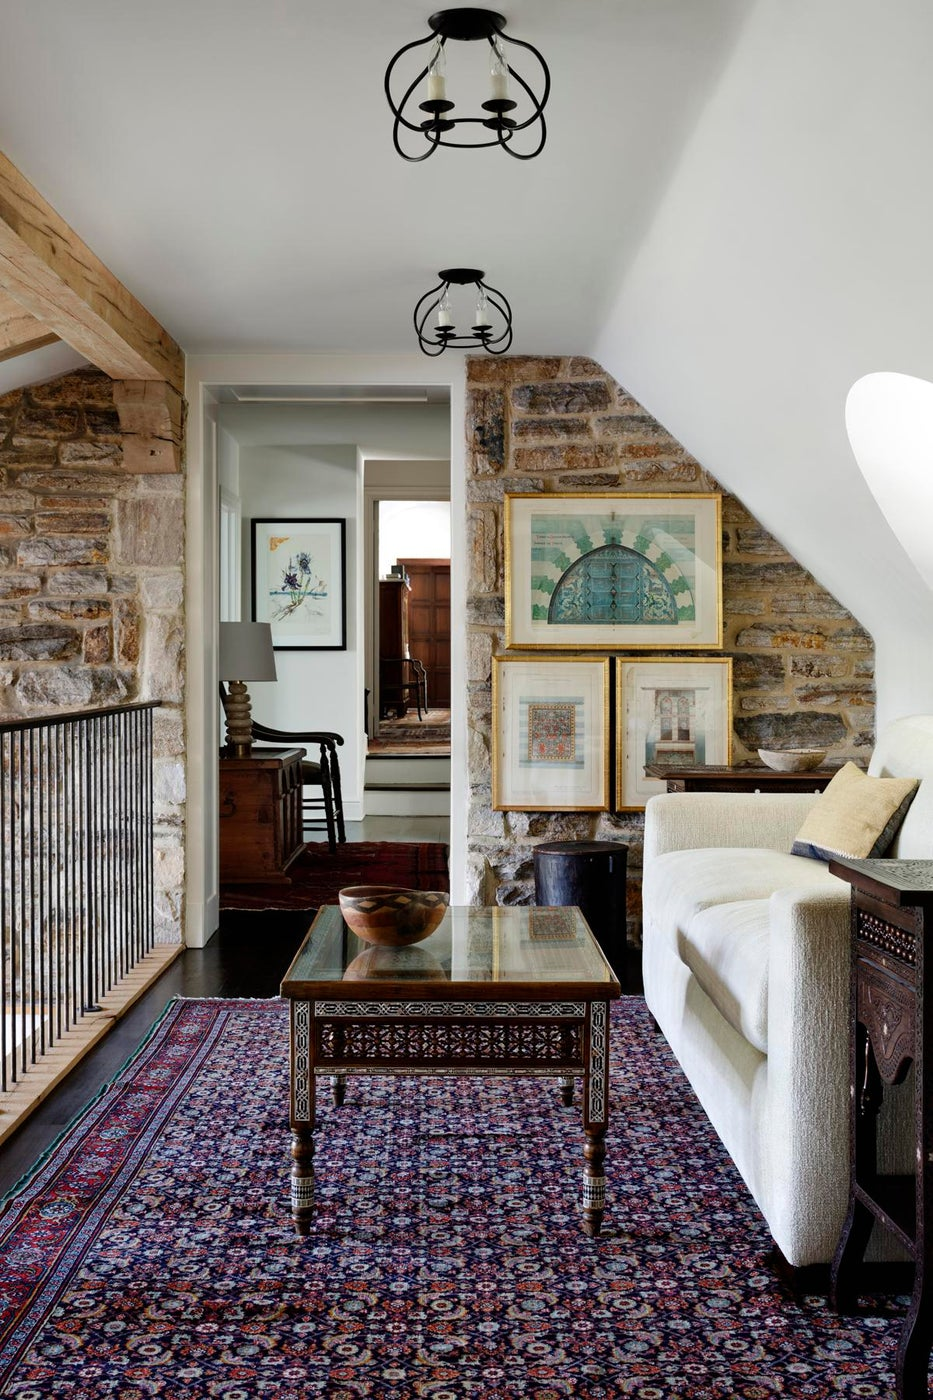 Stone Wall Gallery in a Hallway